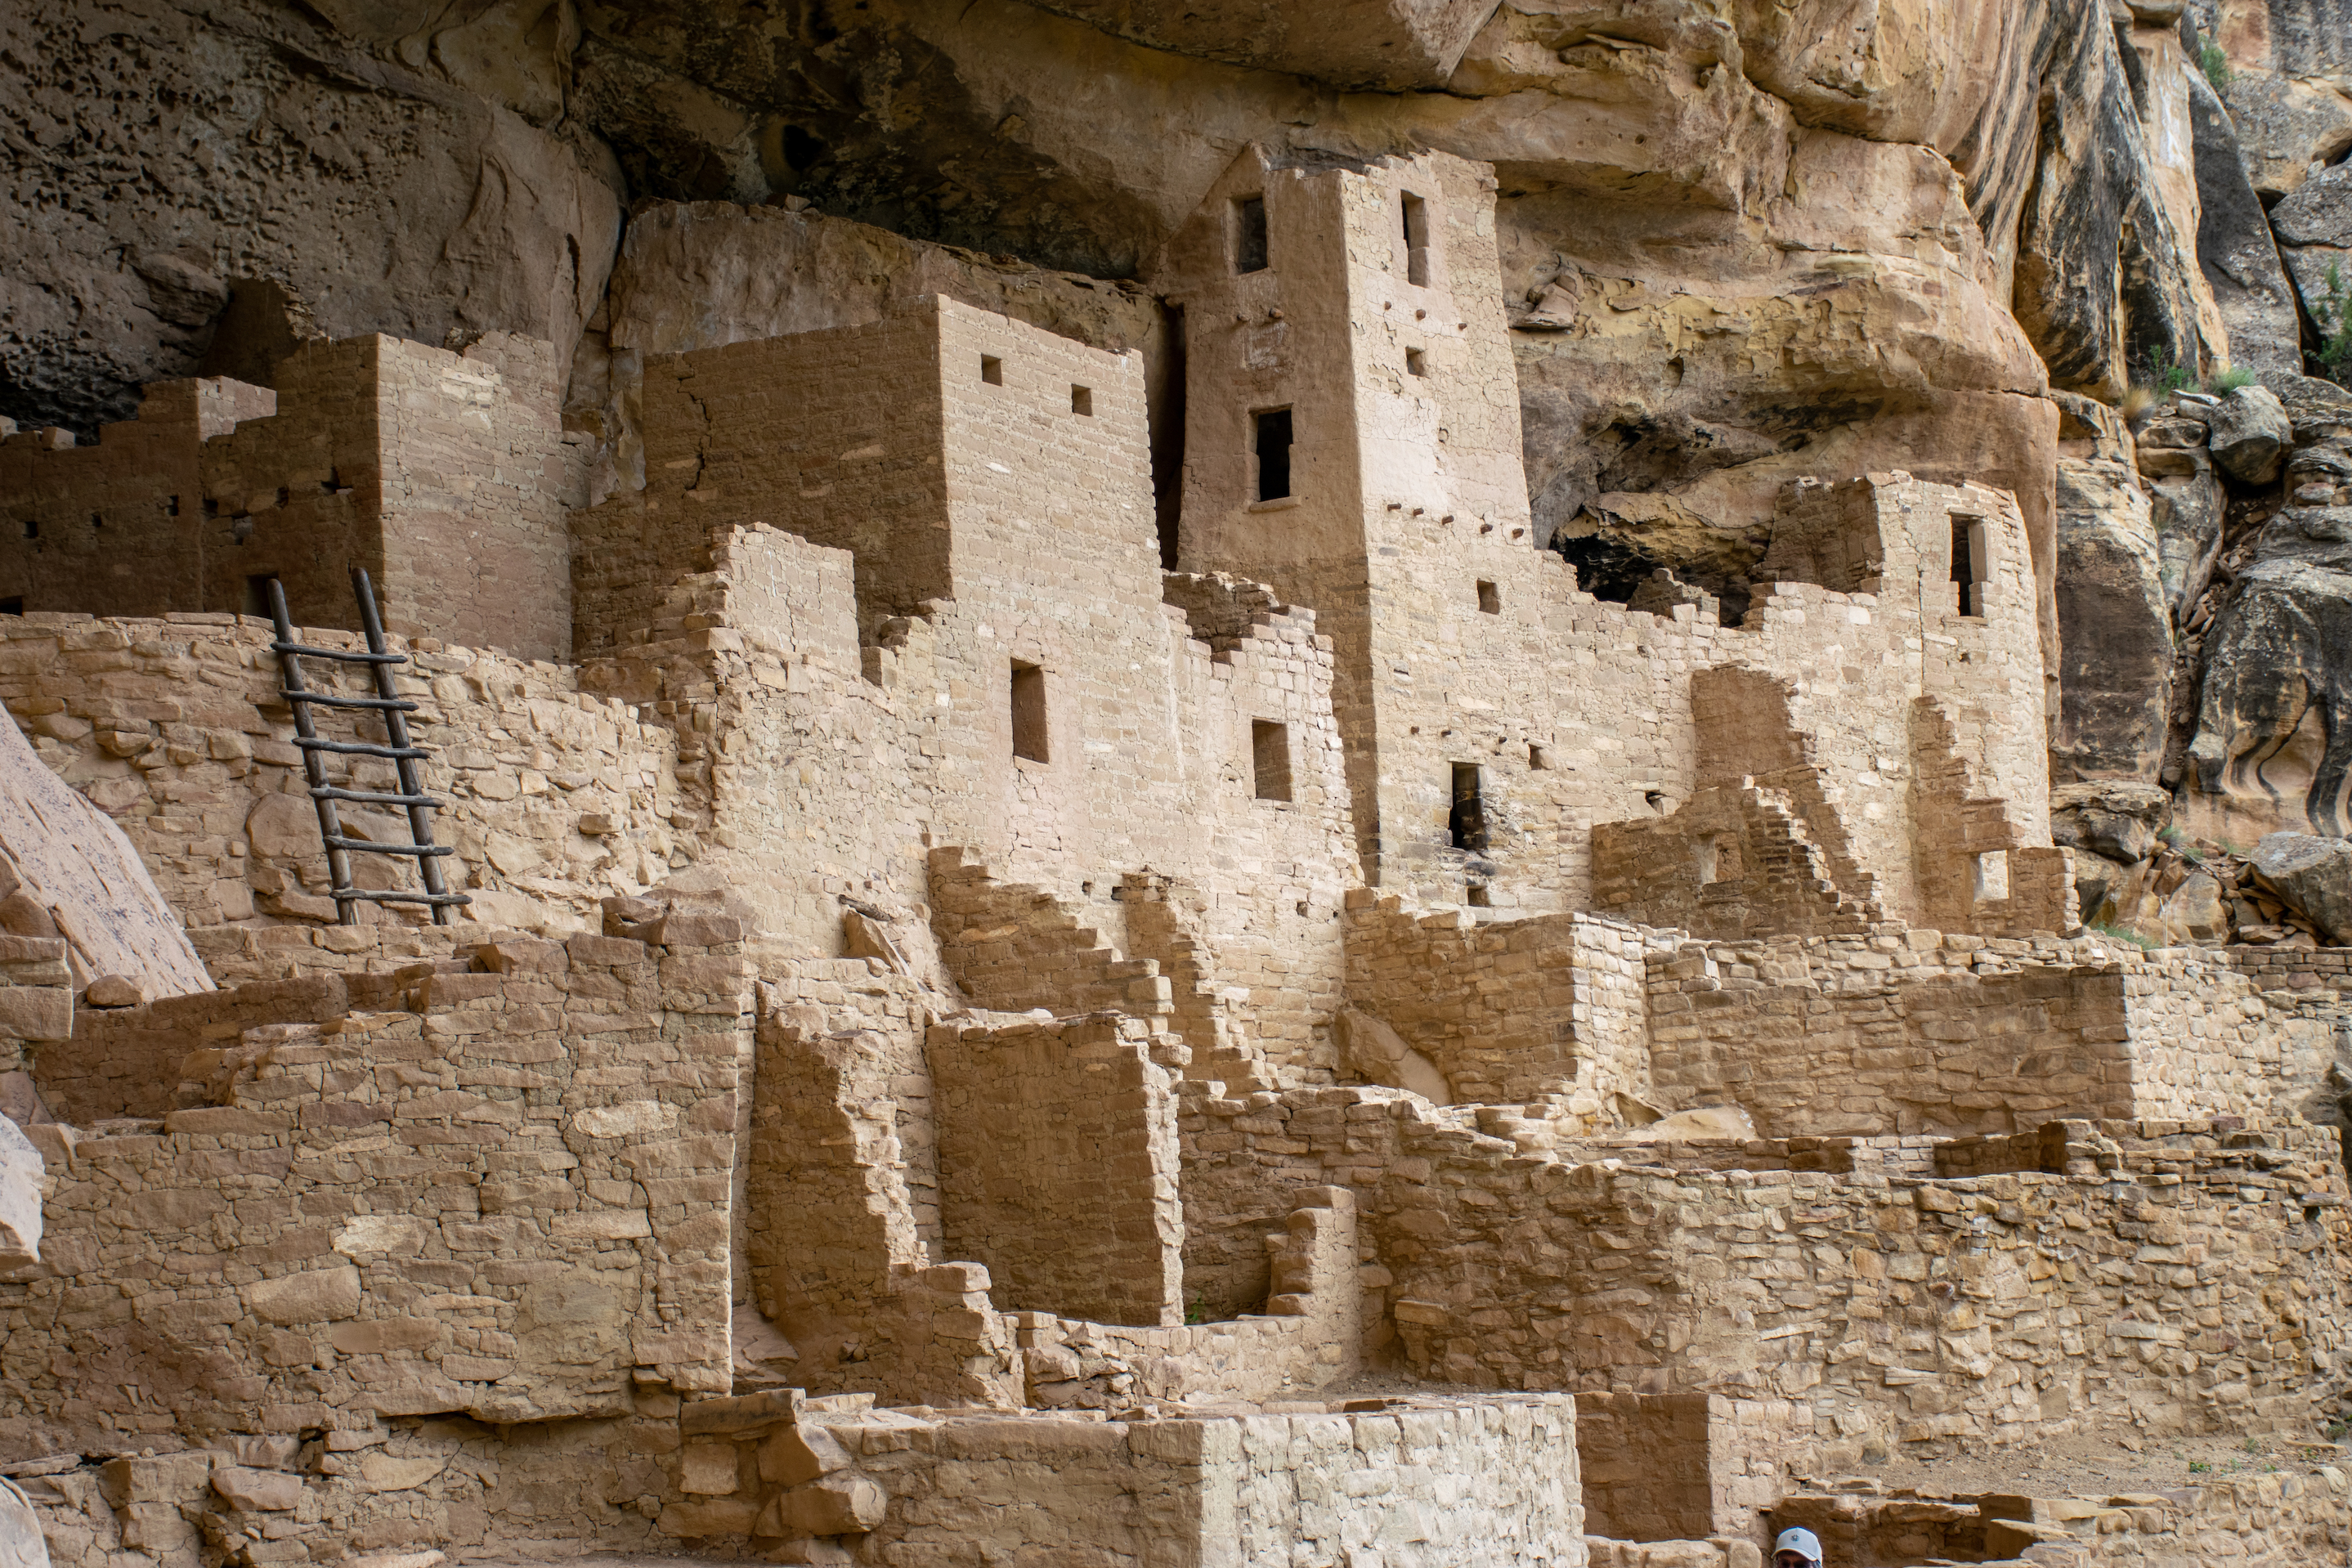 View of the right hand side of Cliff Palace with buildings and ladder in view